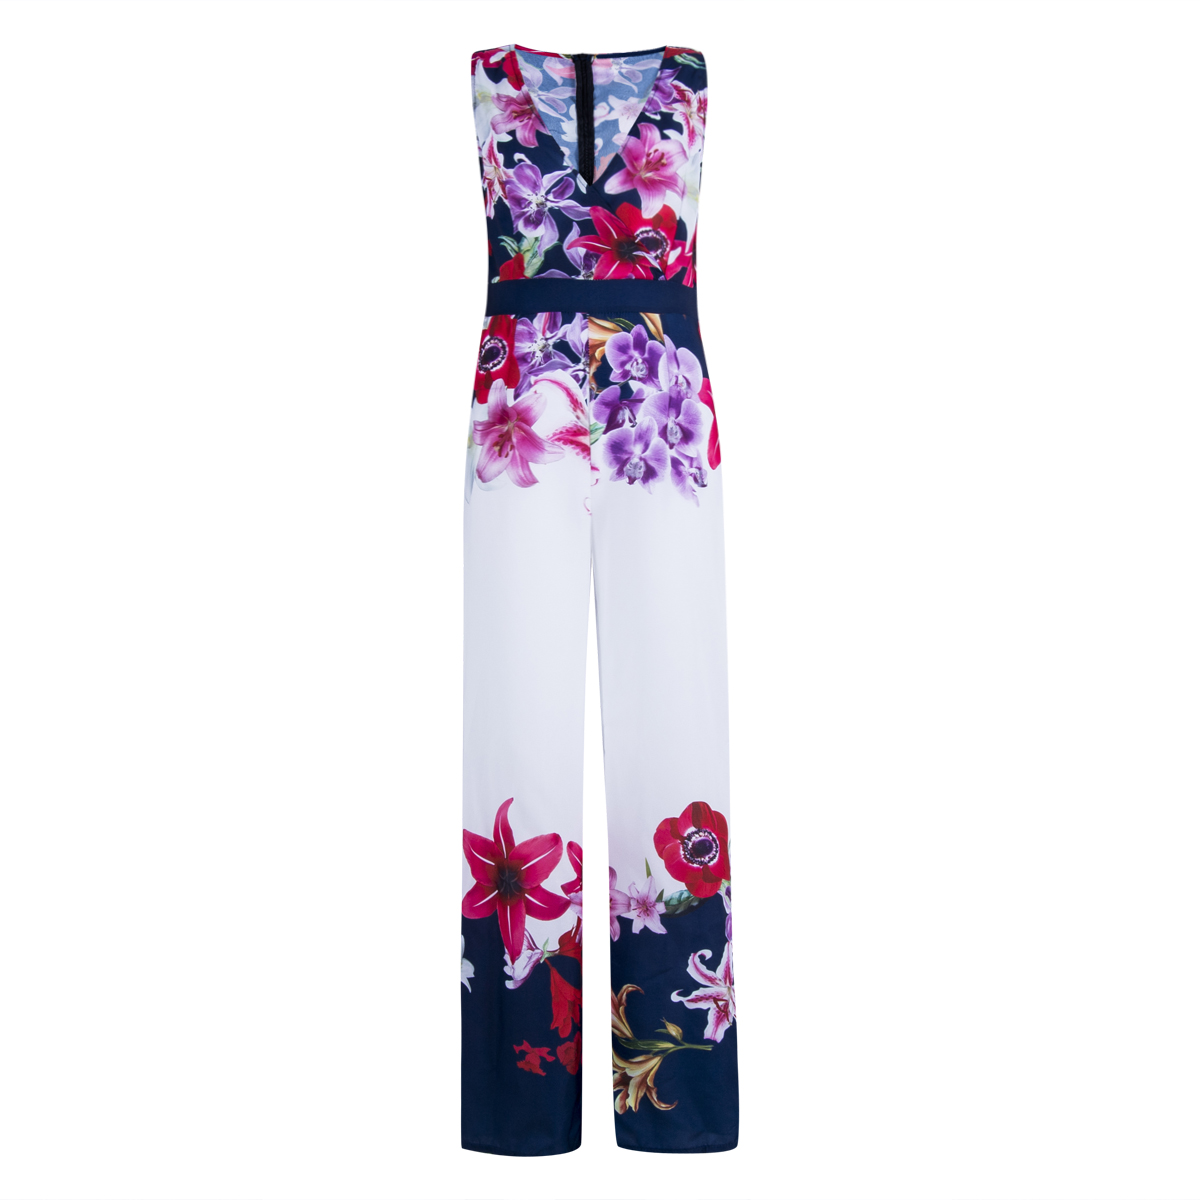 New Women Playsuit Sexy V-neck Floral Jumpsuit Sexy Lady Clubwear Flower Summer Playsuit Wide Leg Party Jumpsuit Romper #2